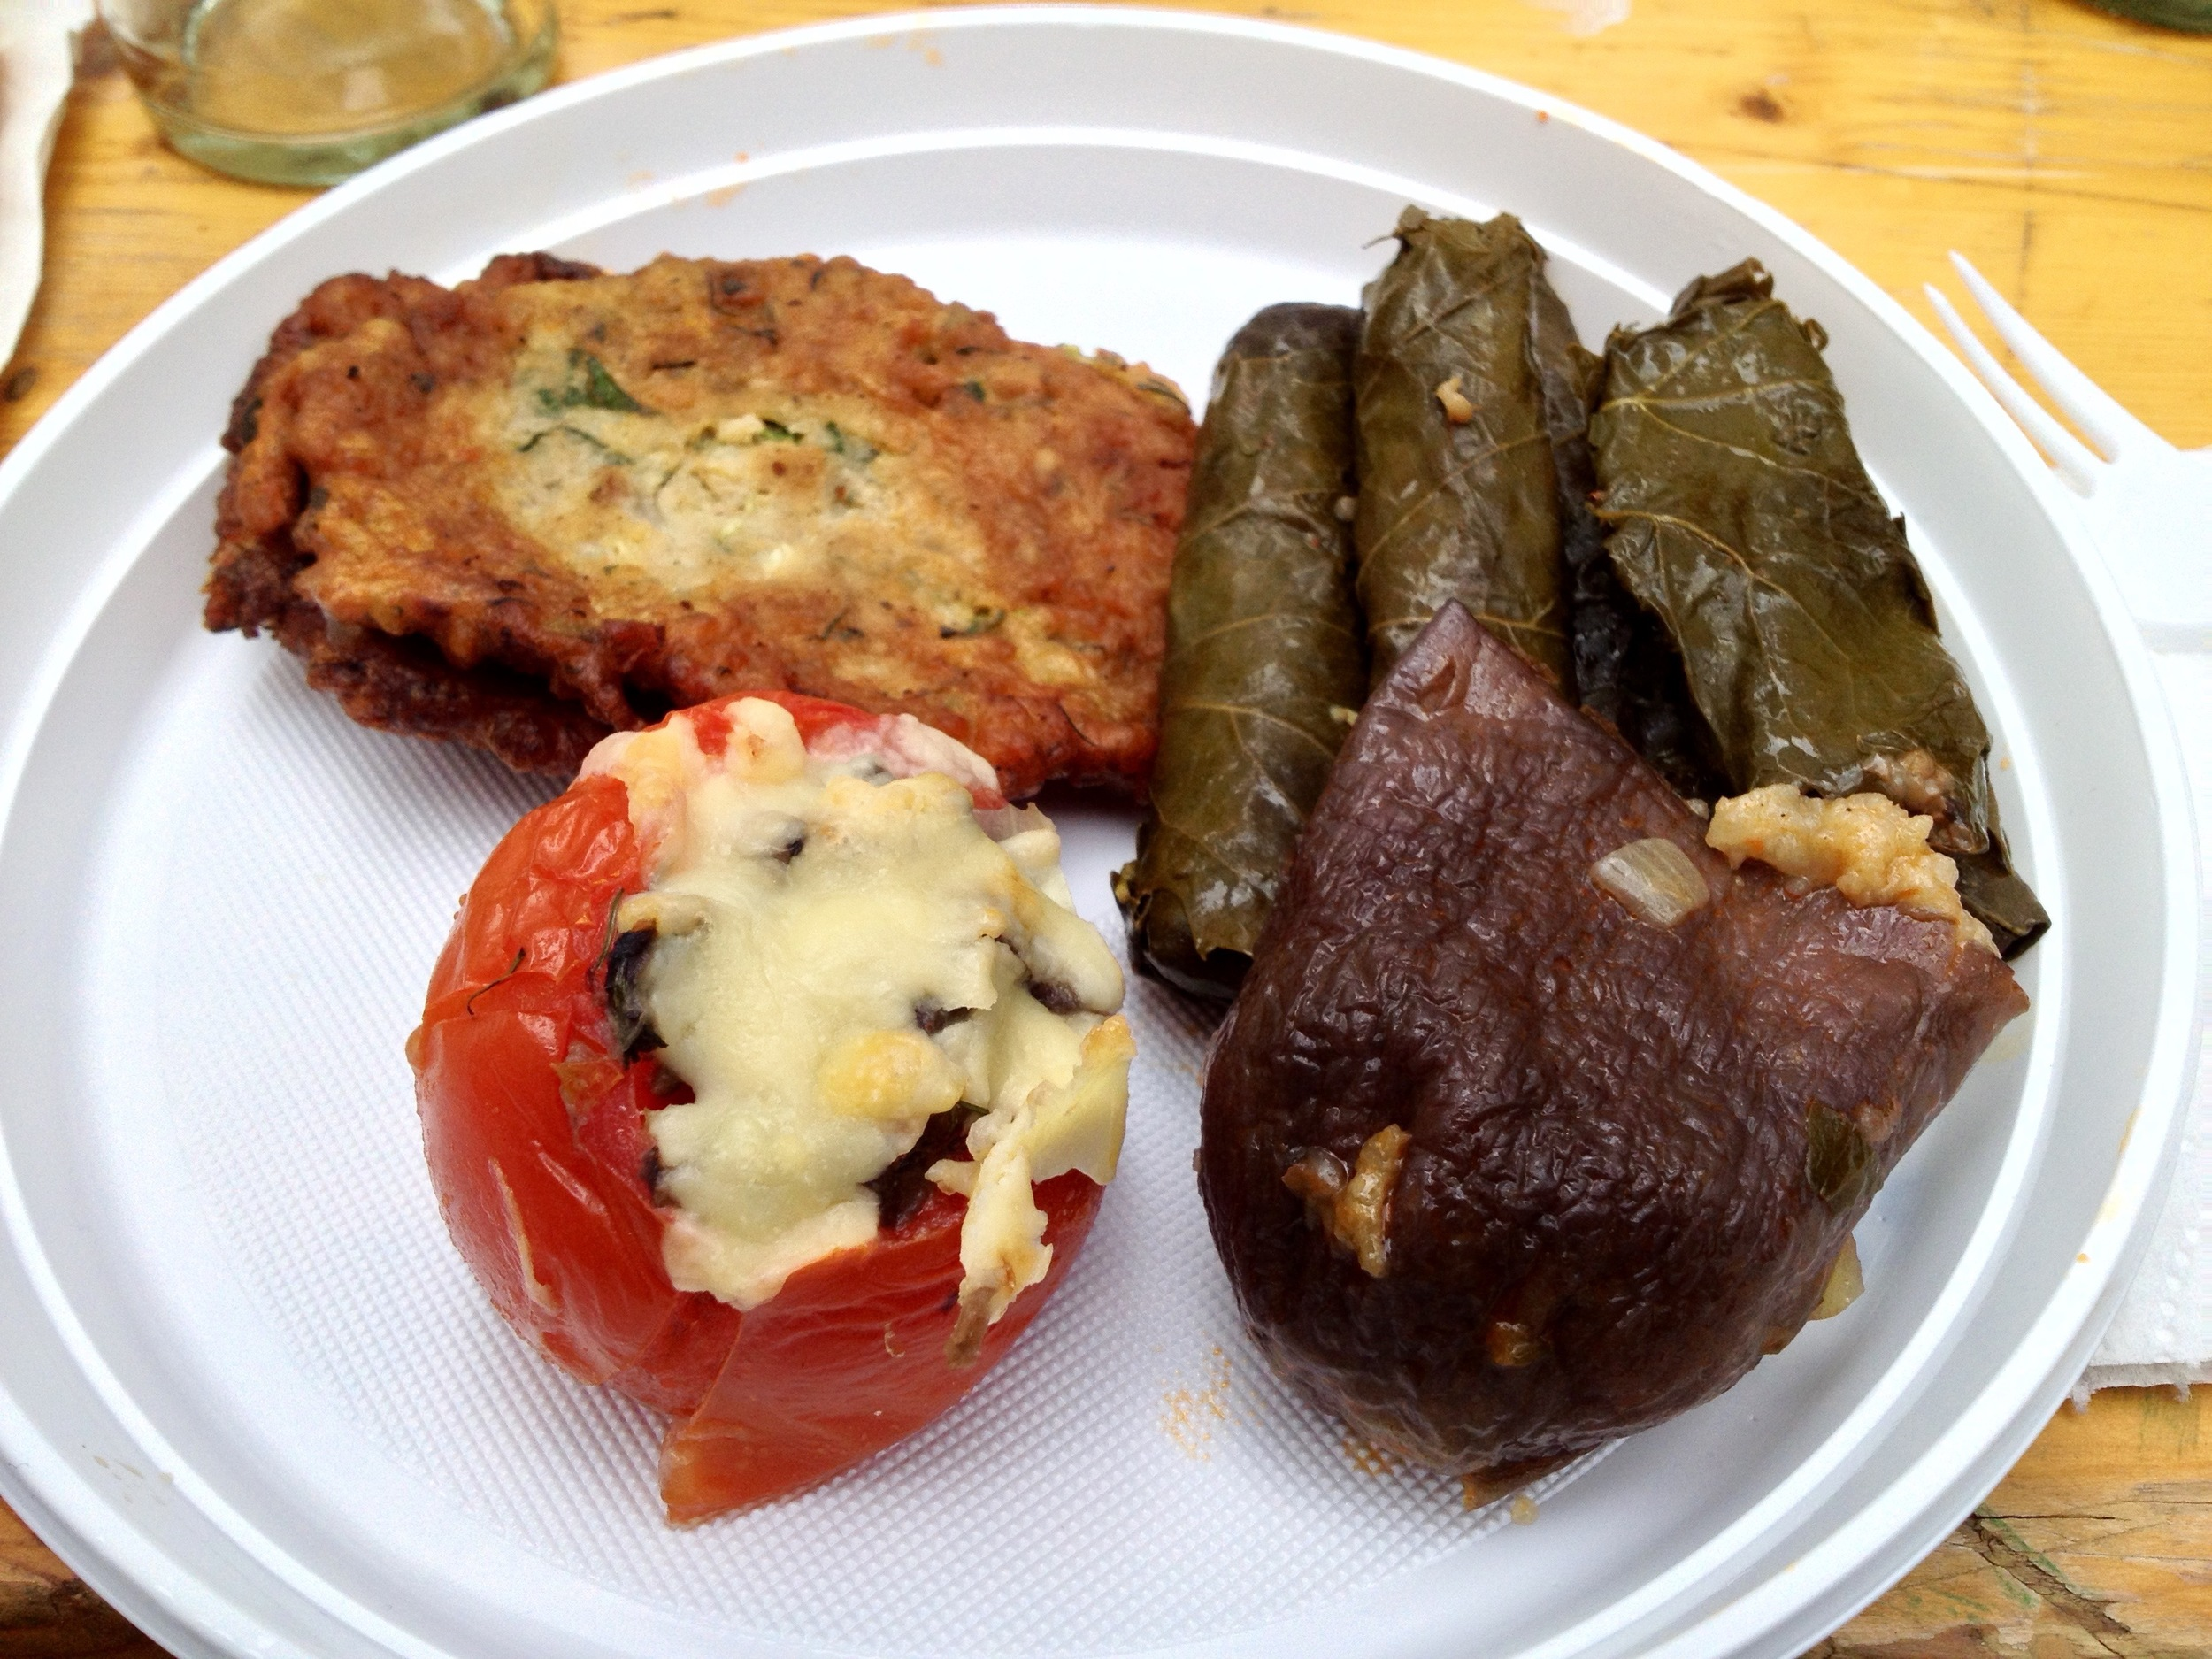 Clockwise from the top left: zucchini patties, stuffed grape leaves, stuffed eggplant, and a stuffed tomato